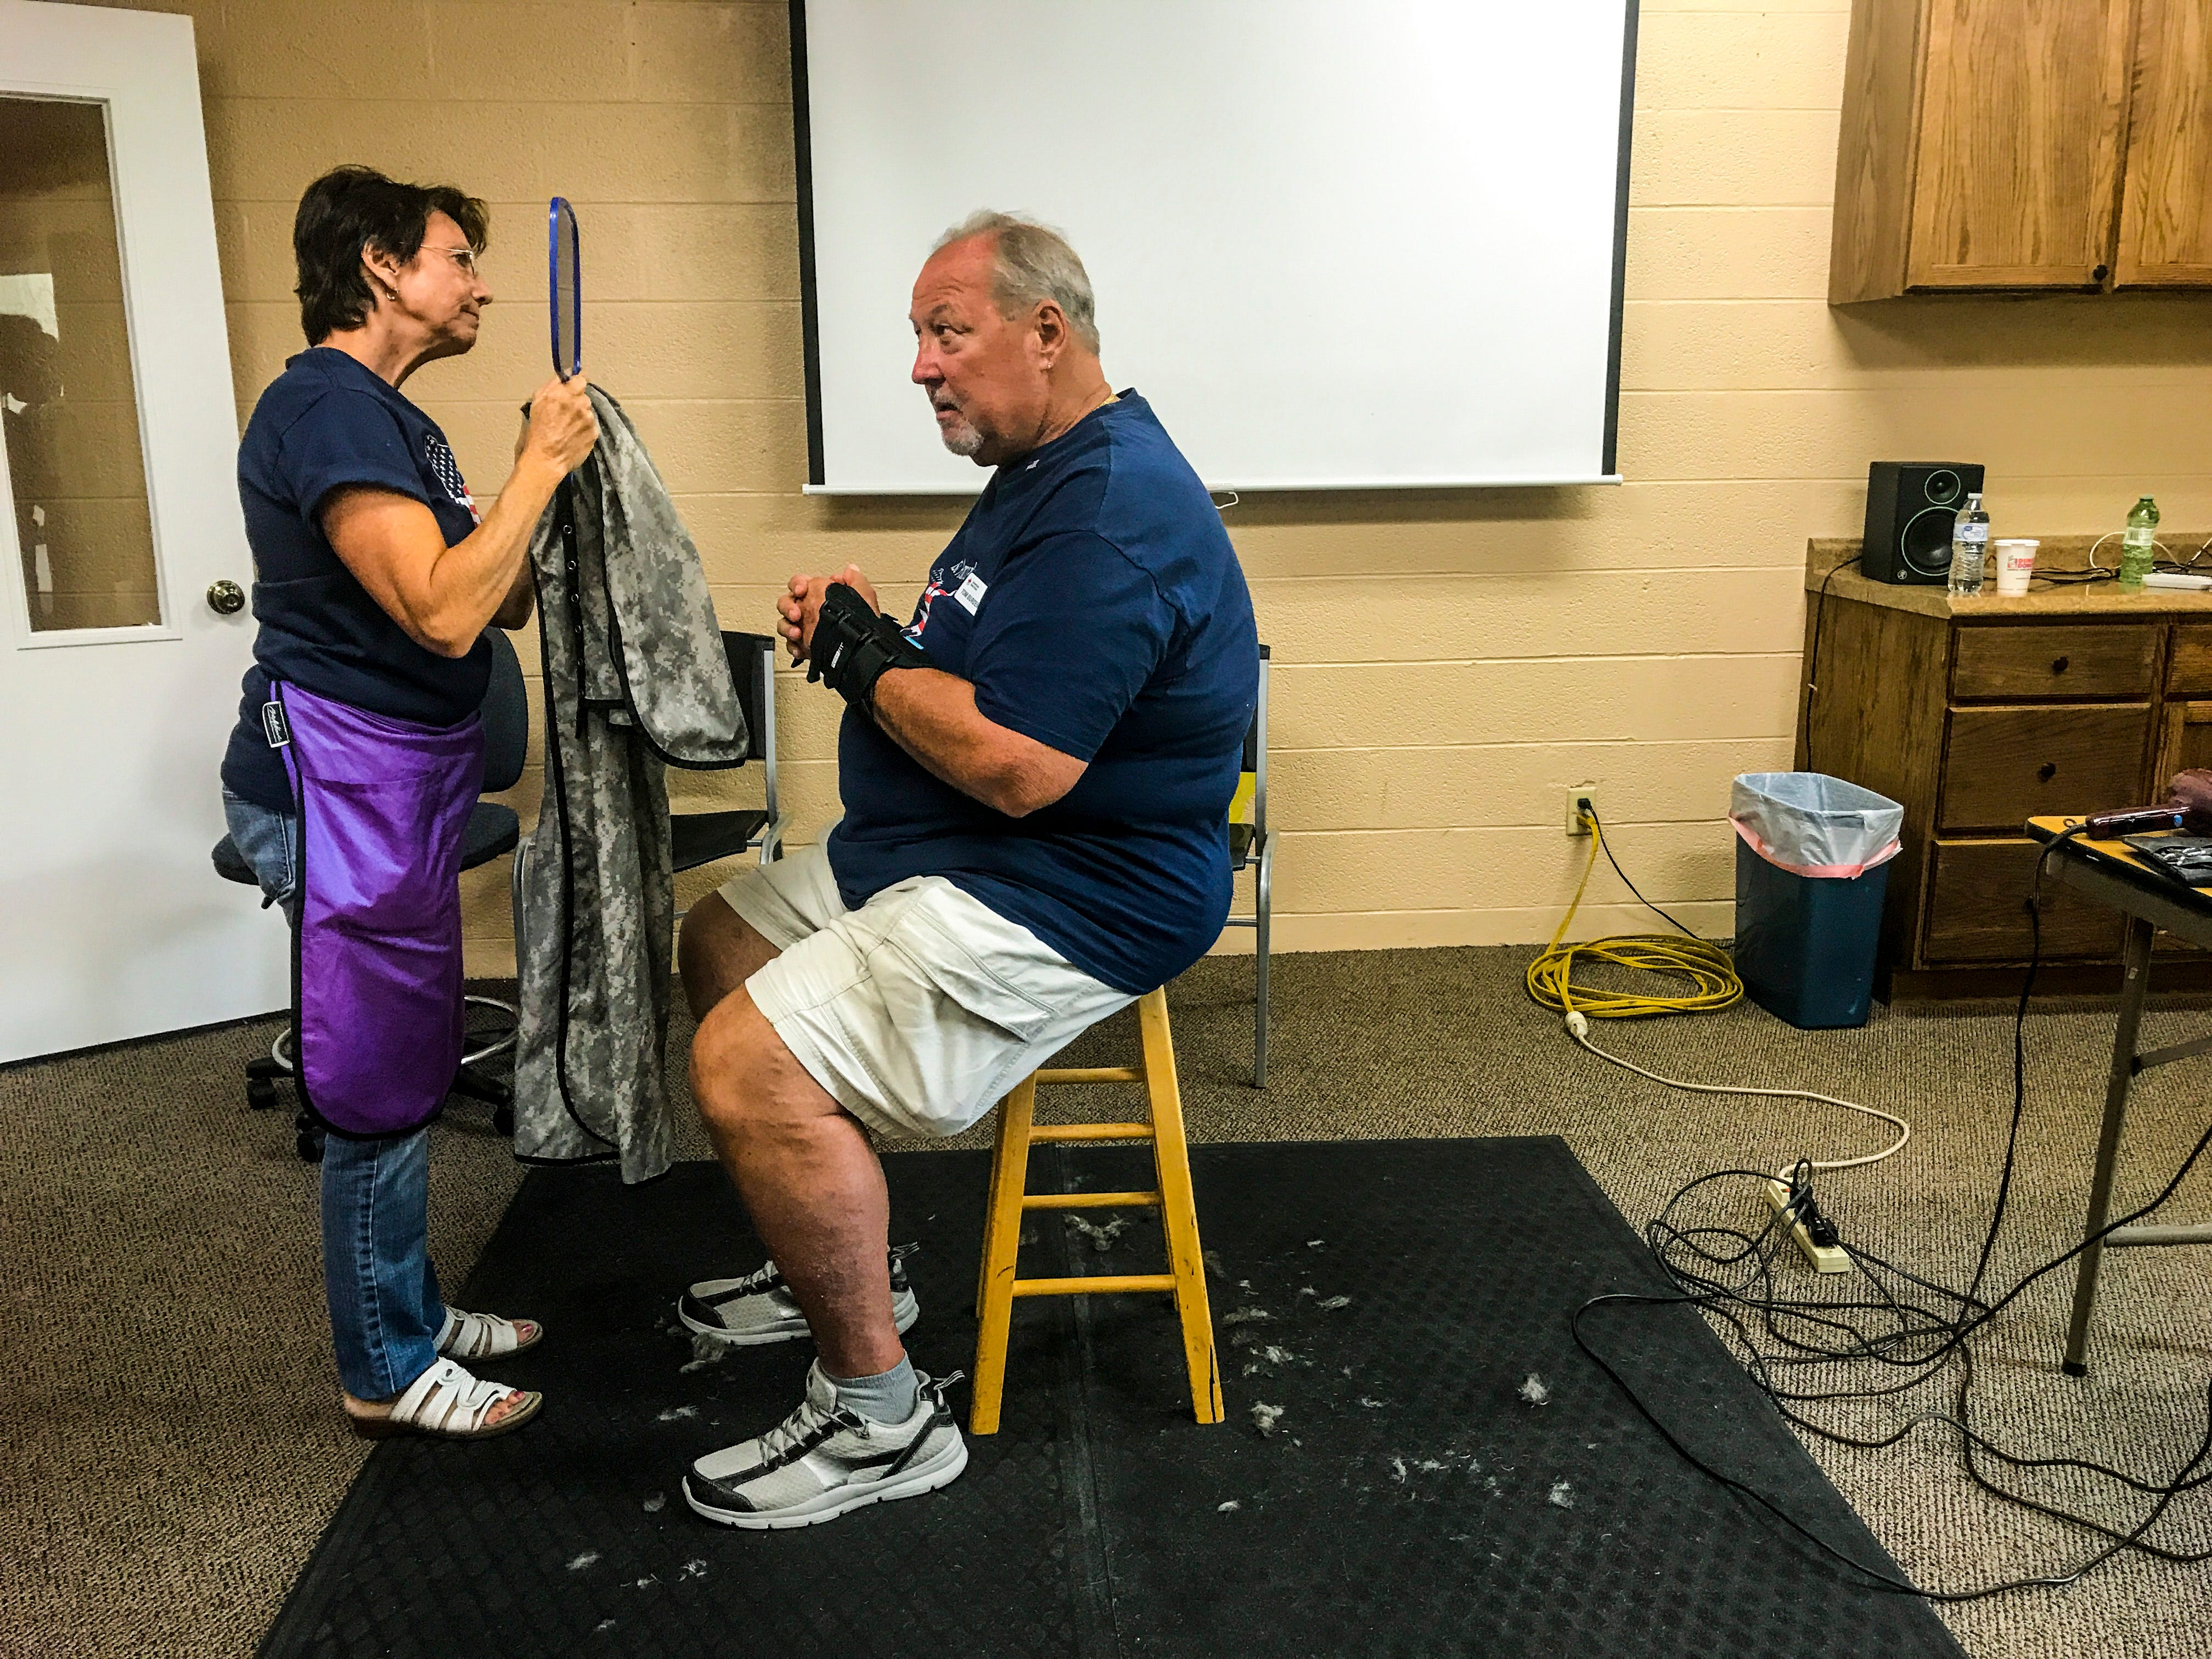 Tom Burden, volunteer with the Red Cross and Army Veteran from South Fort Myers, gets a haircut during the 7th Annual Military Appreciation Day, Saturday, Nov. 3, 2018, at First Christian Church on McGregor Blvd. in Ft. Myers. This was one of many services offered to the veterans. Tamara Hardy, with Shear Image Salon, offered free the cuts, along with Helen Appese, who volunteers her time to cut hair, as well.